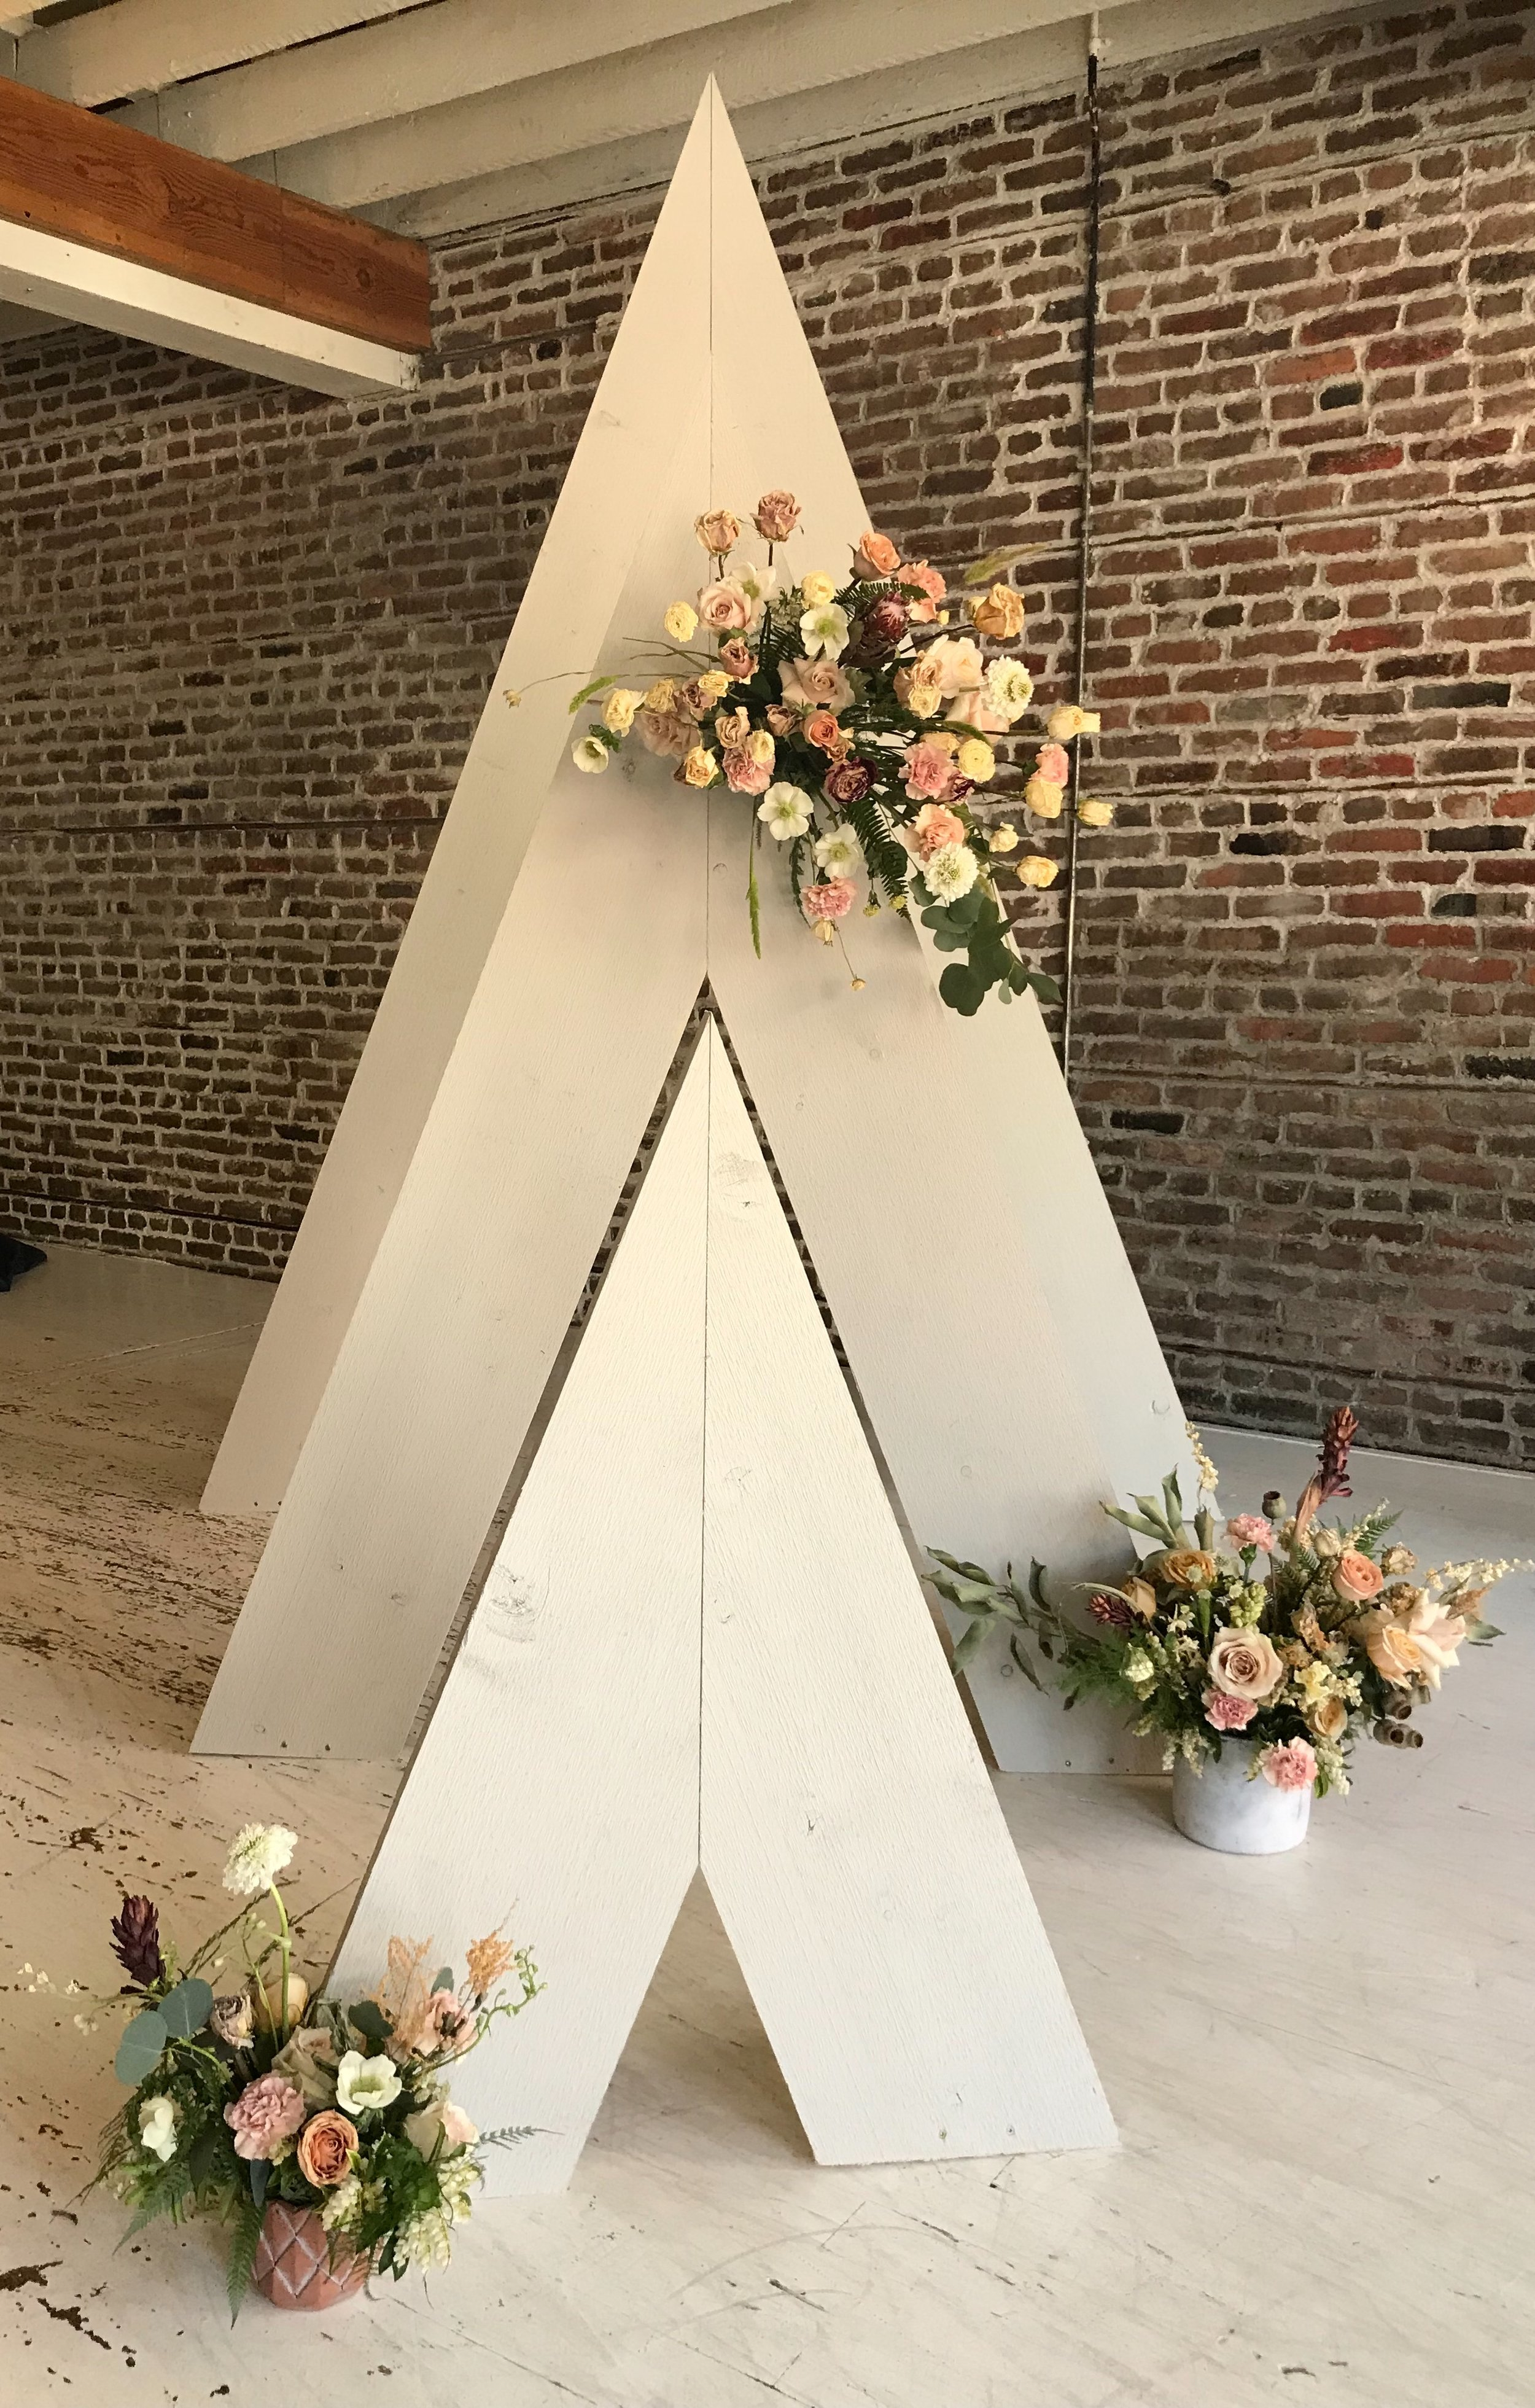 white wood triangle arch - 3 pieces   Quantity: 1  Price: $175.00